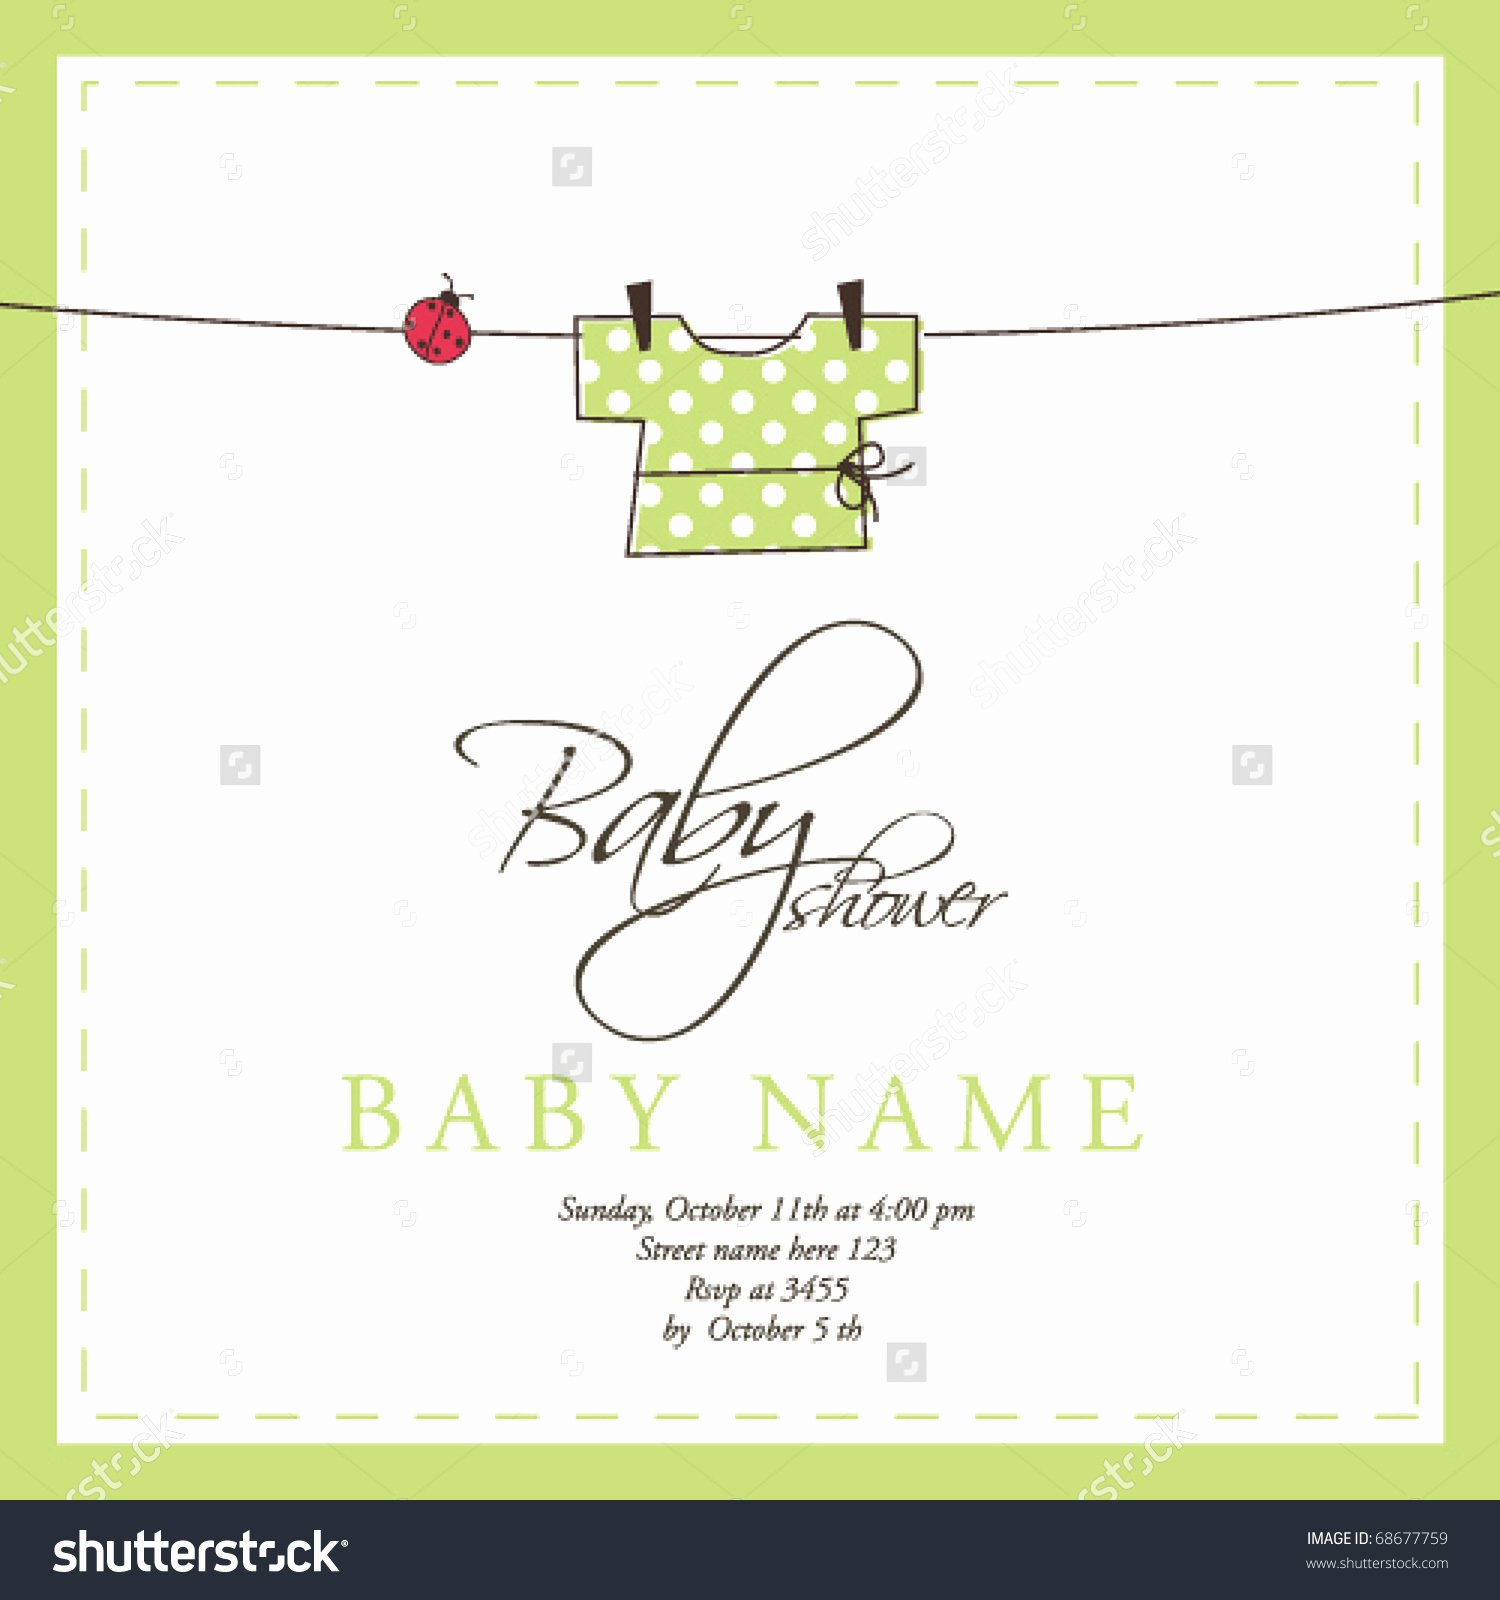 Baby Shower Programs Template Unique Baby Shower Program Template Mughals